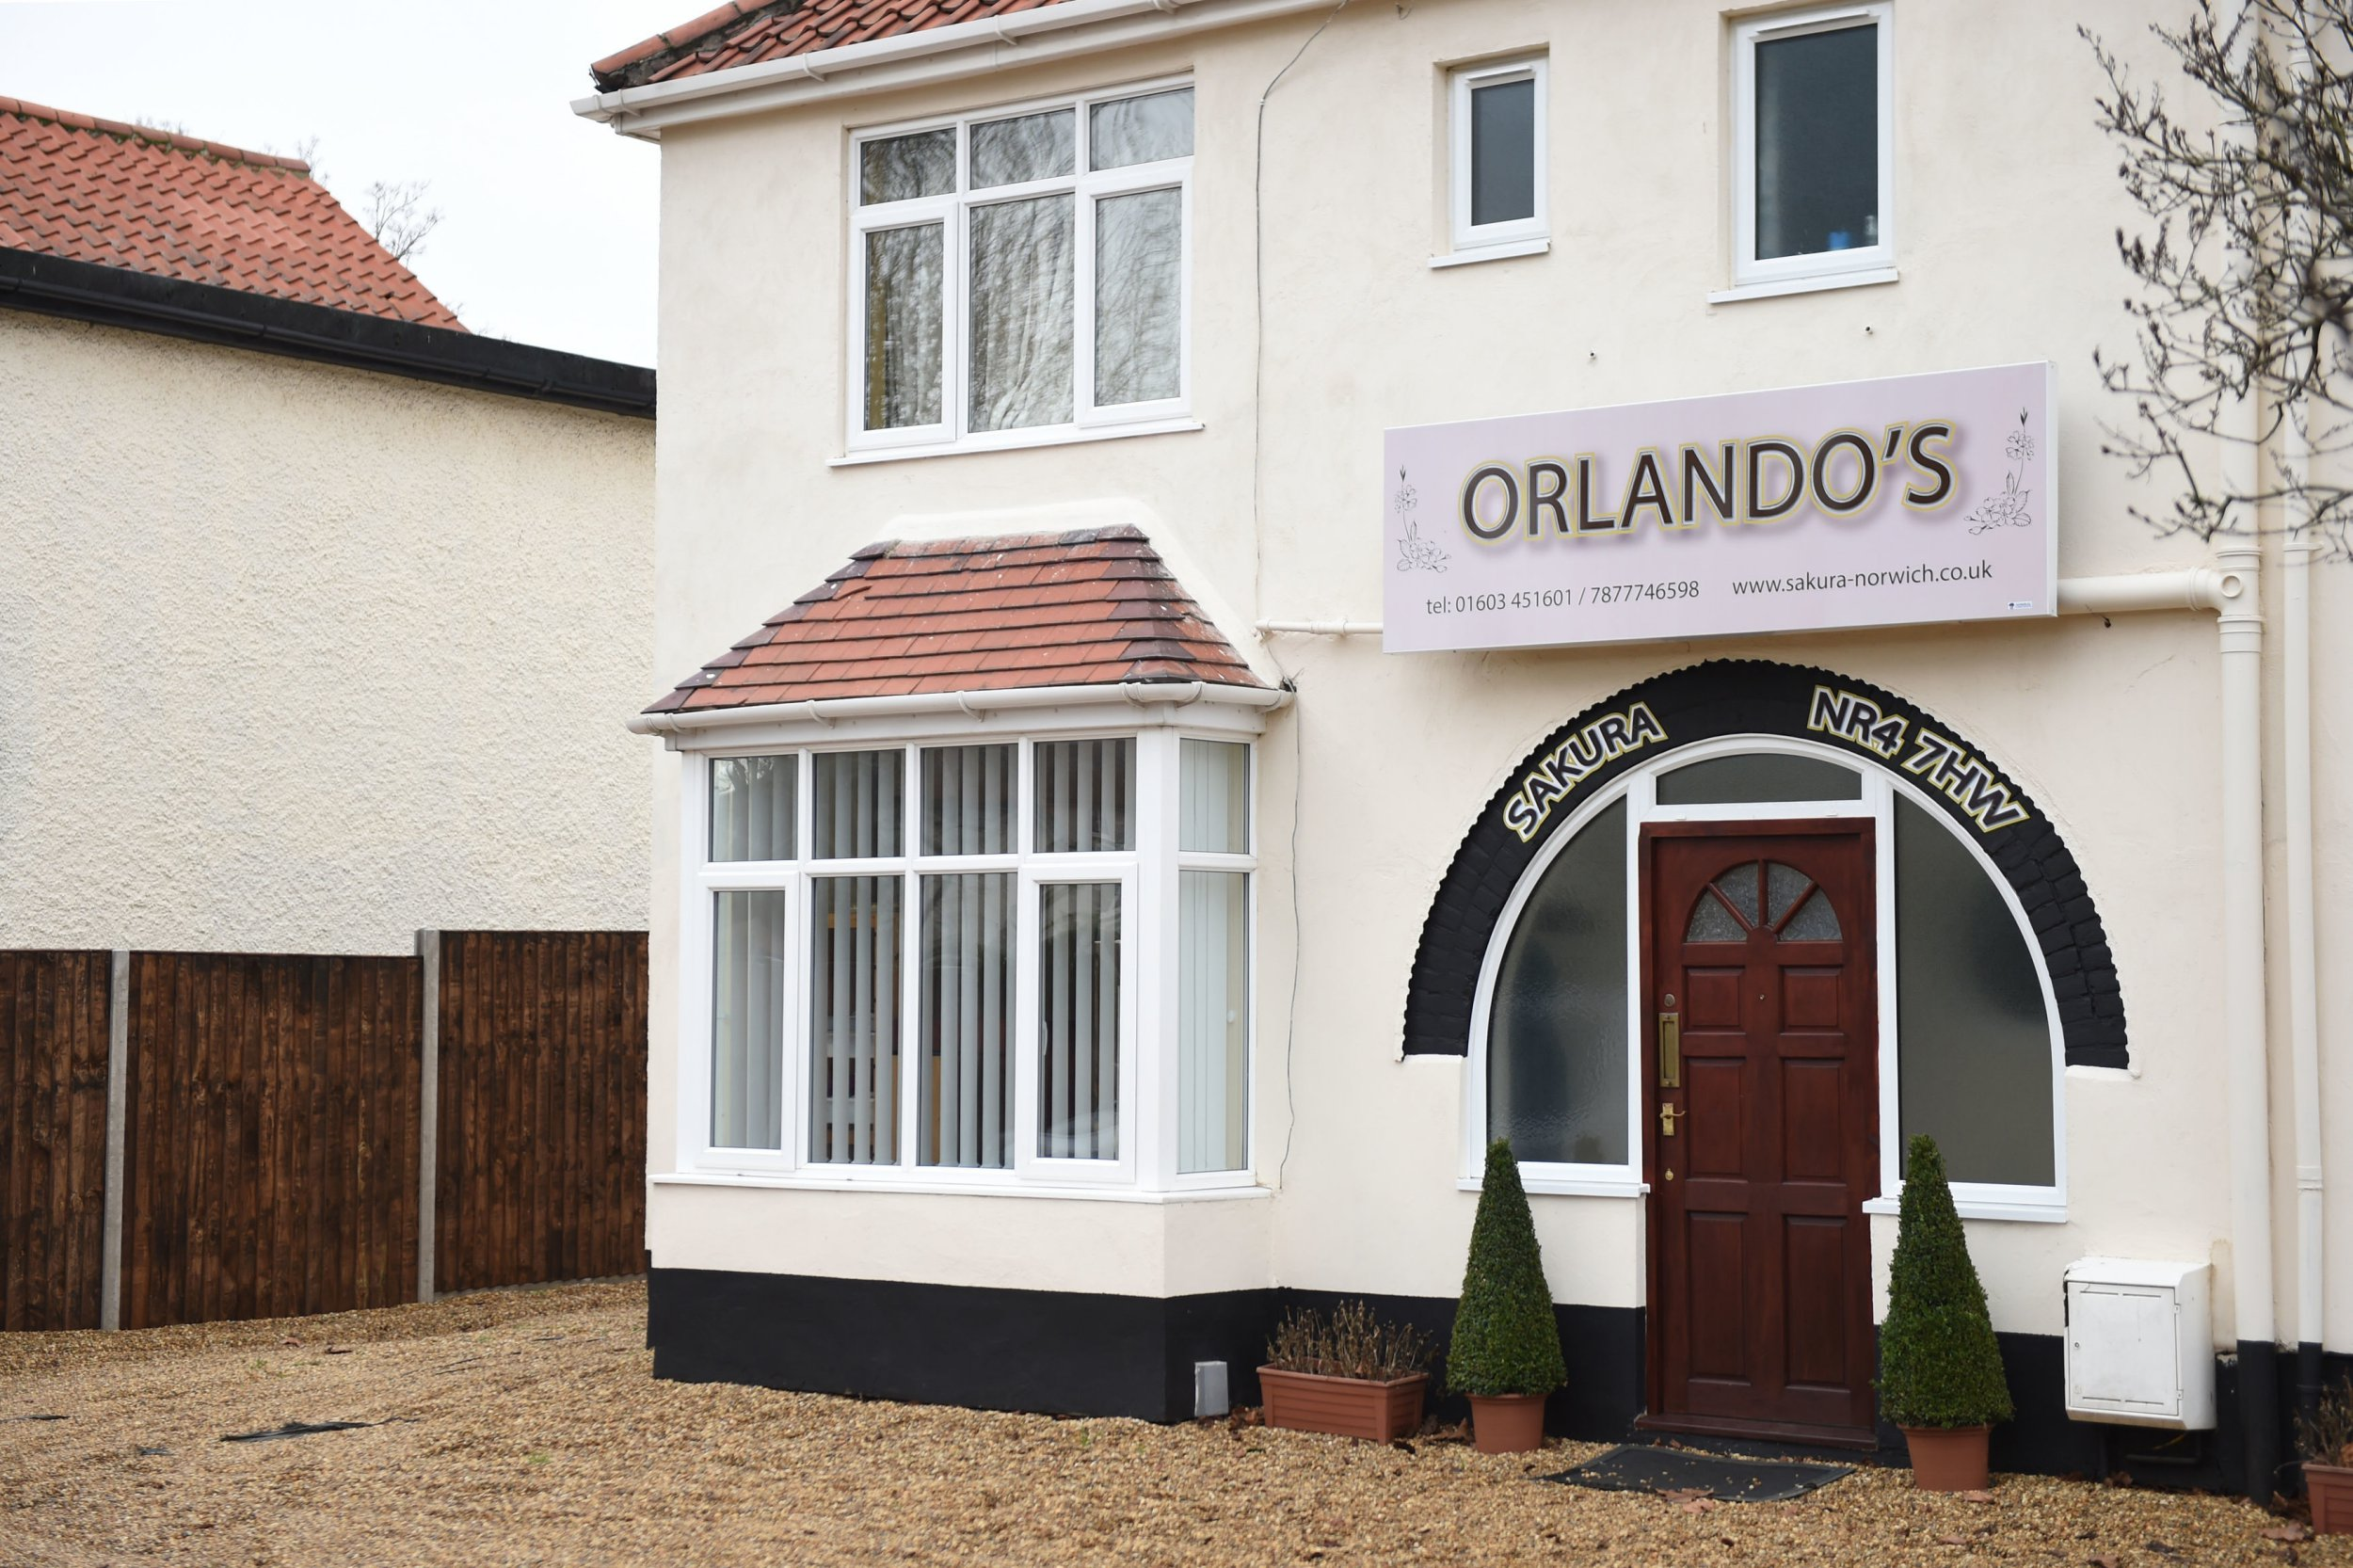 A residential property on Earlham Road in Norwich, which is being investigated by Norwich City Council as neighbours believe Orlando Williams is running a sushi restaurant from inside the residential property. PRESS ASSOCIATION Photo. Picture date: Friday January 11, 2019. See PA story CONSUMER Restaurant. Photo credit should read: Joe Giddens/PA Wire